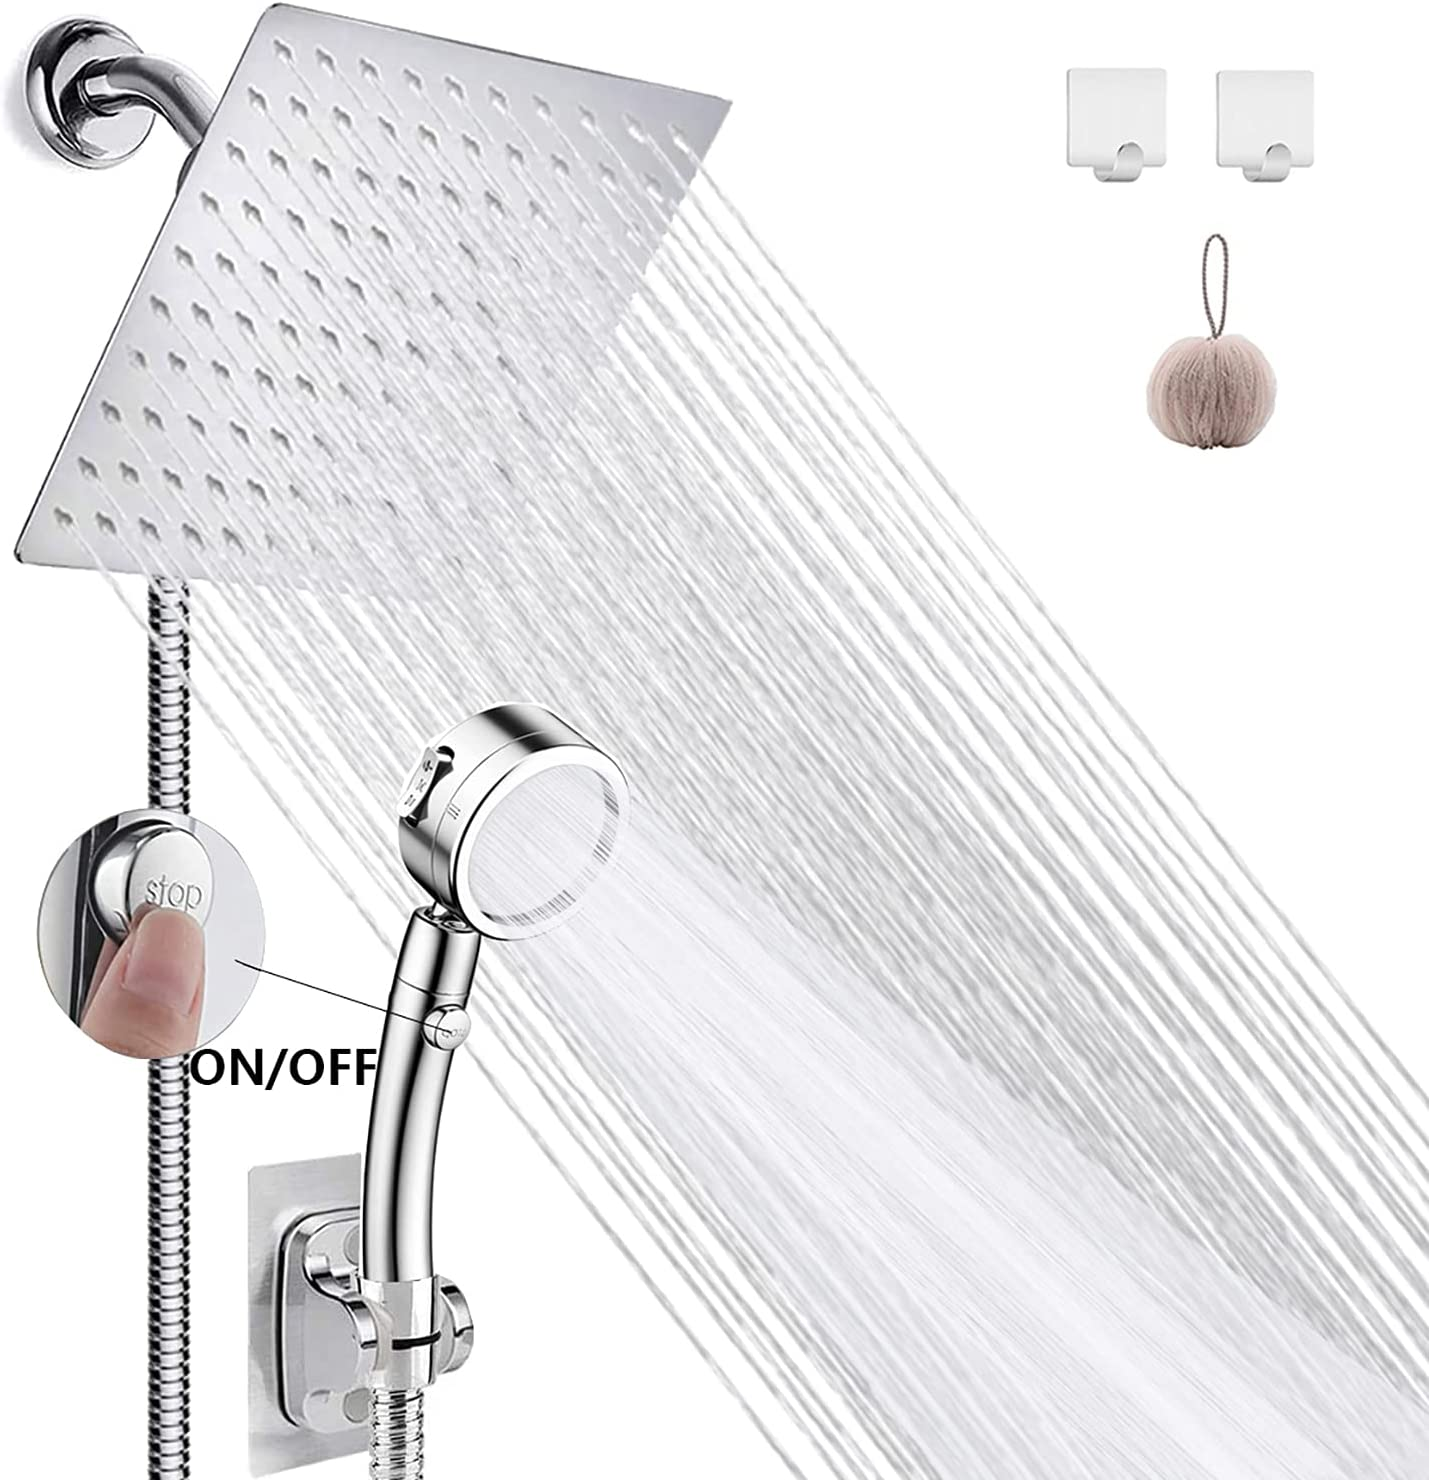 Shower Head Max 46% OFF Rain with Handheld 8'' High Pres WEISTERLLY Be super welcome